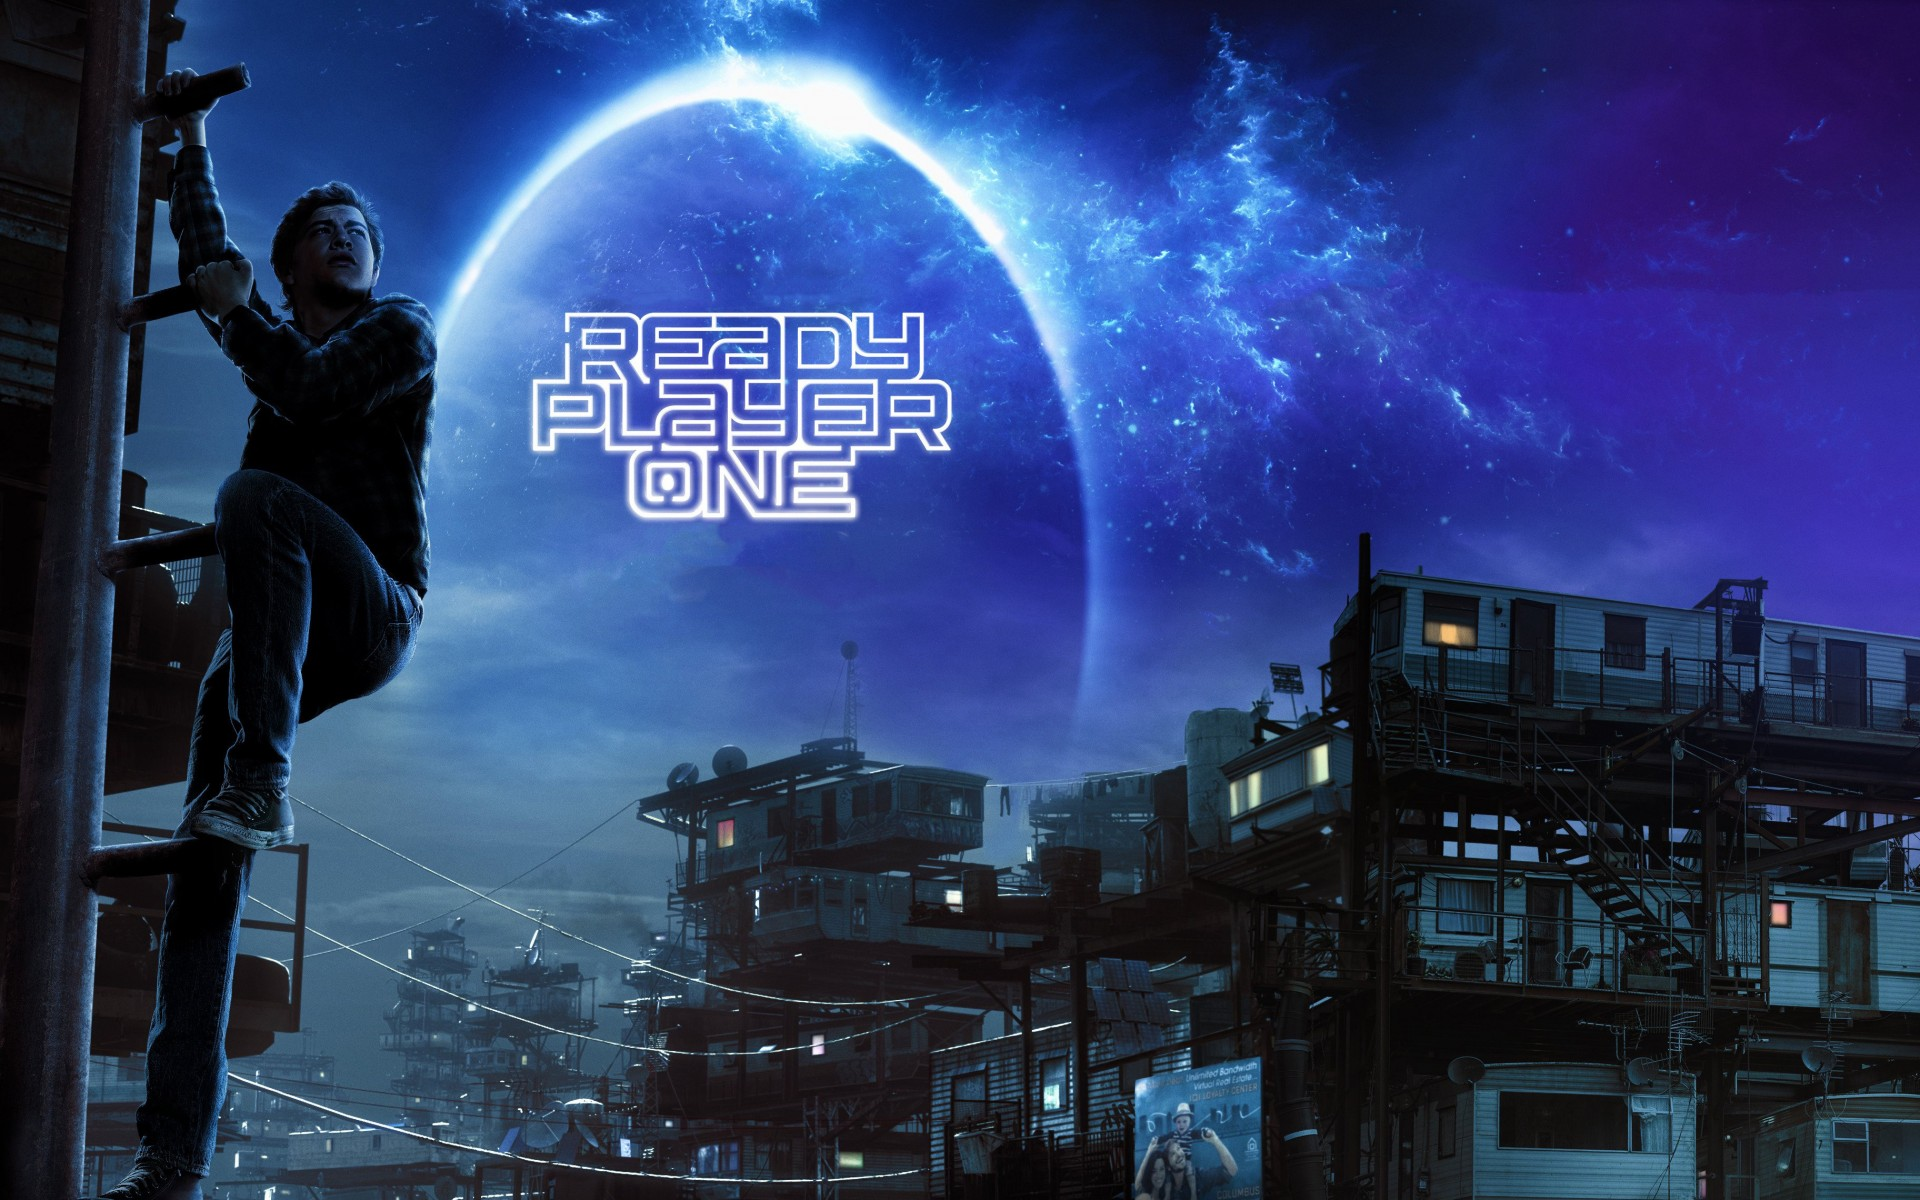 Iphone 4 Wallpapers Hd 3d Ready Player One Wallpapers Hd Wallpapers Id 22568